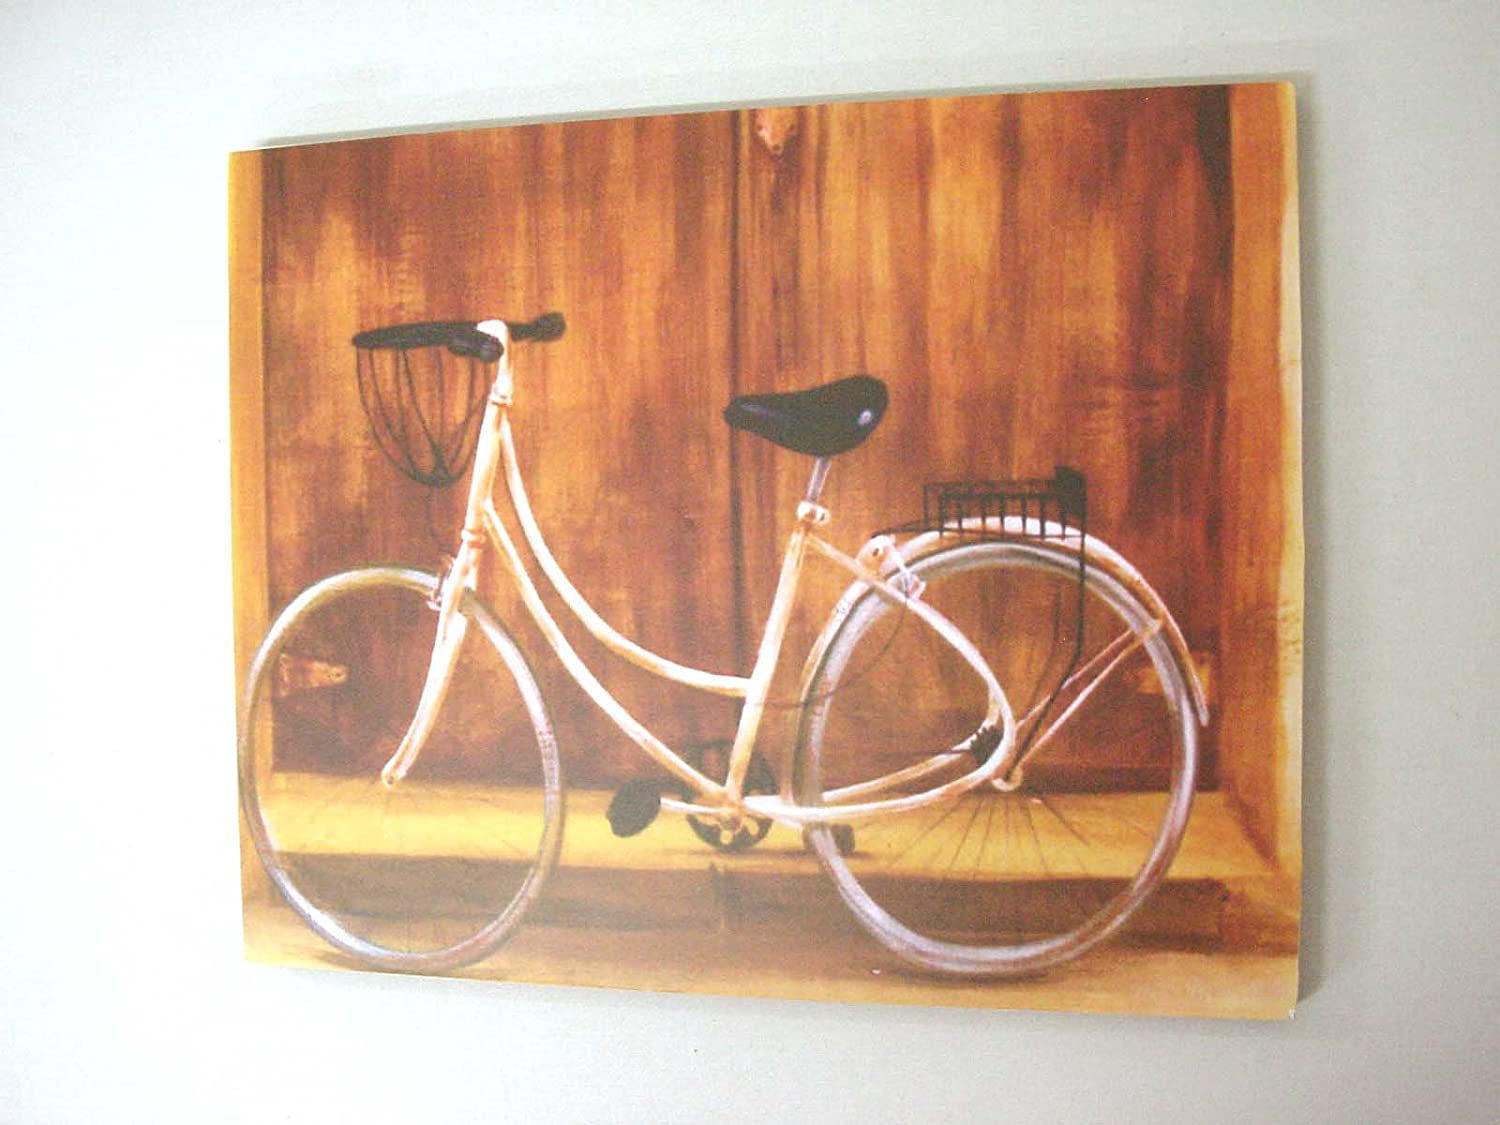 Desconocido Cuadro Tabla Bicicleta Antigua Pared Amarillo: Amazon ...